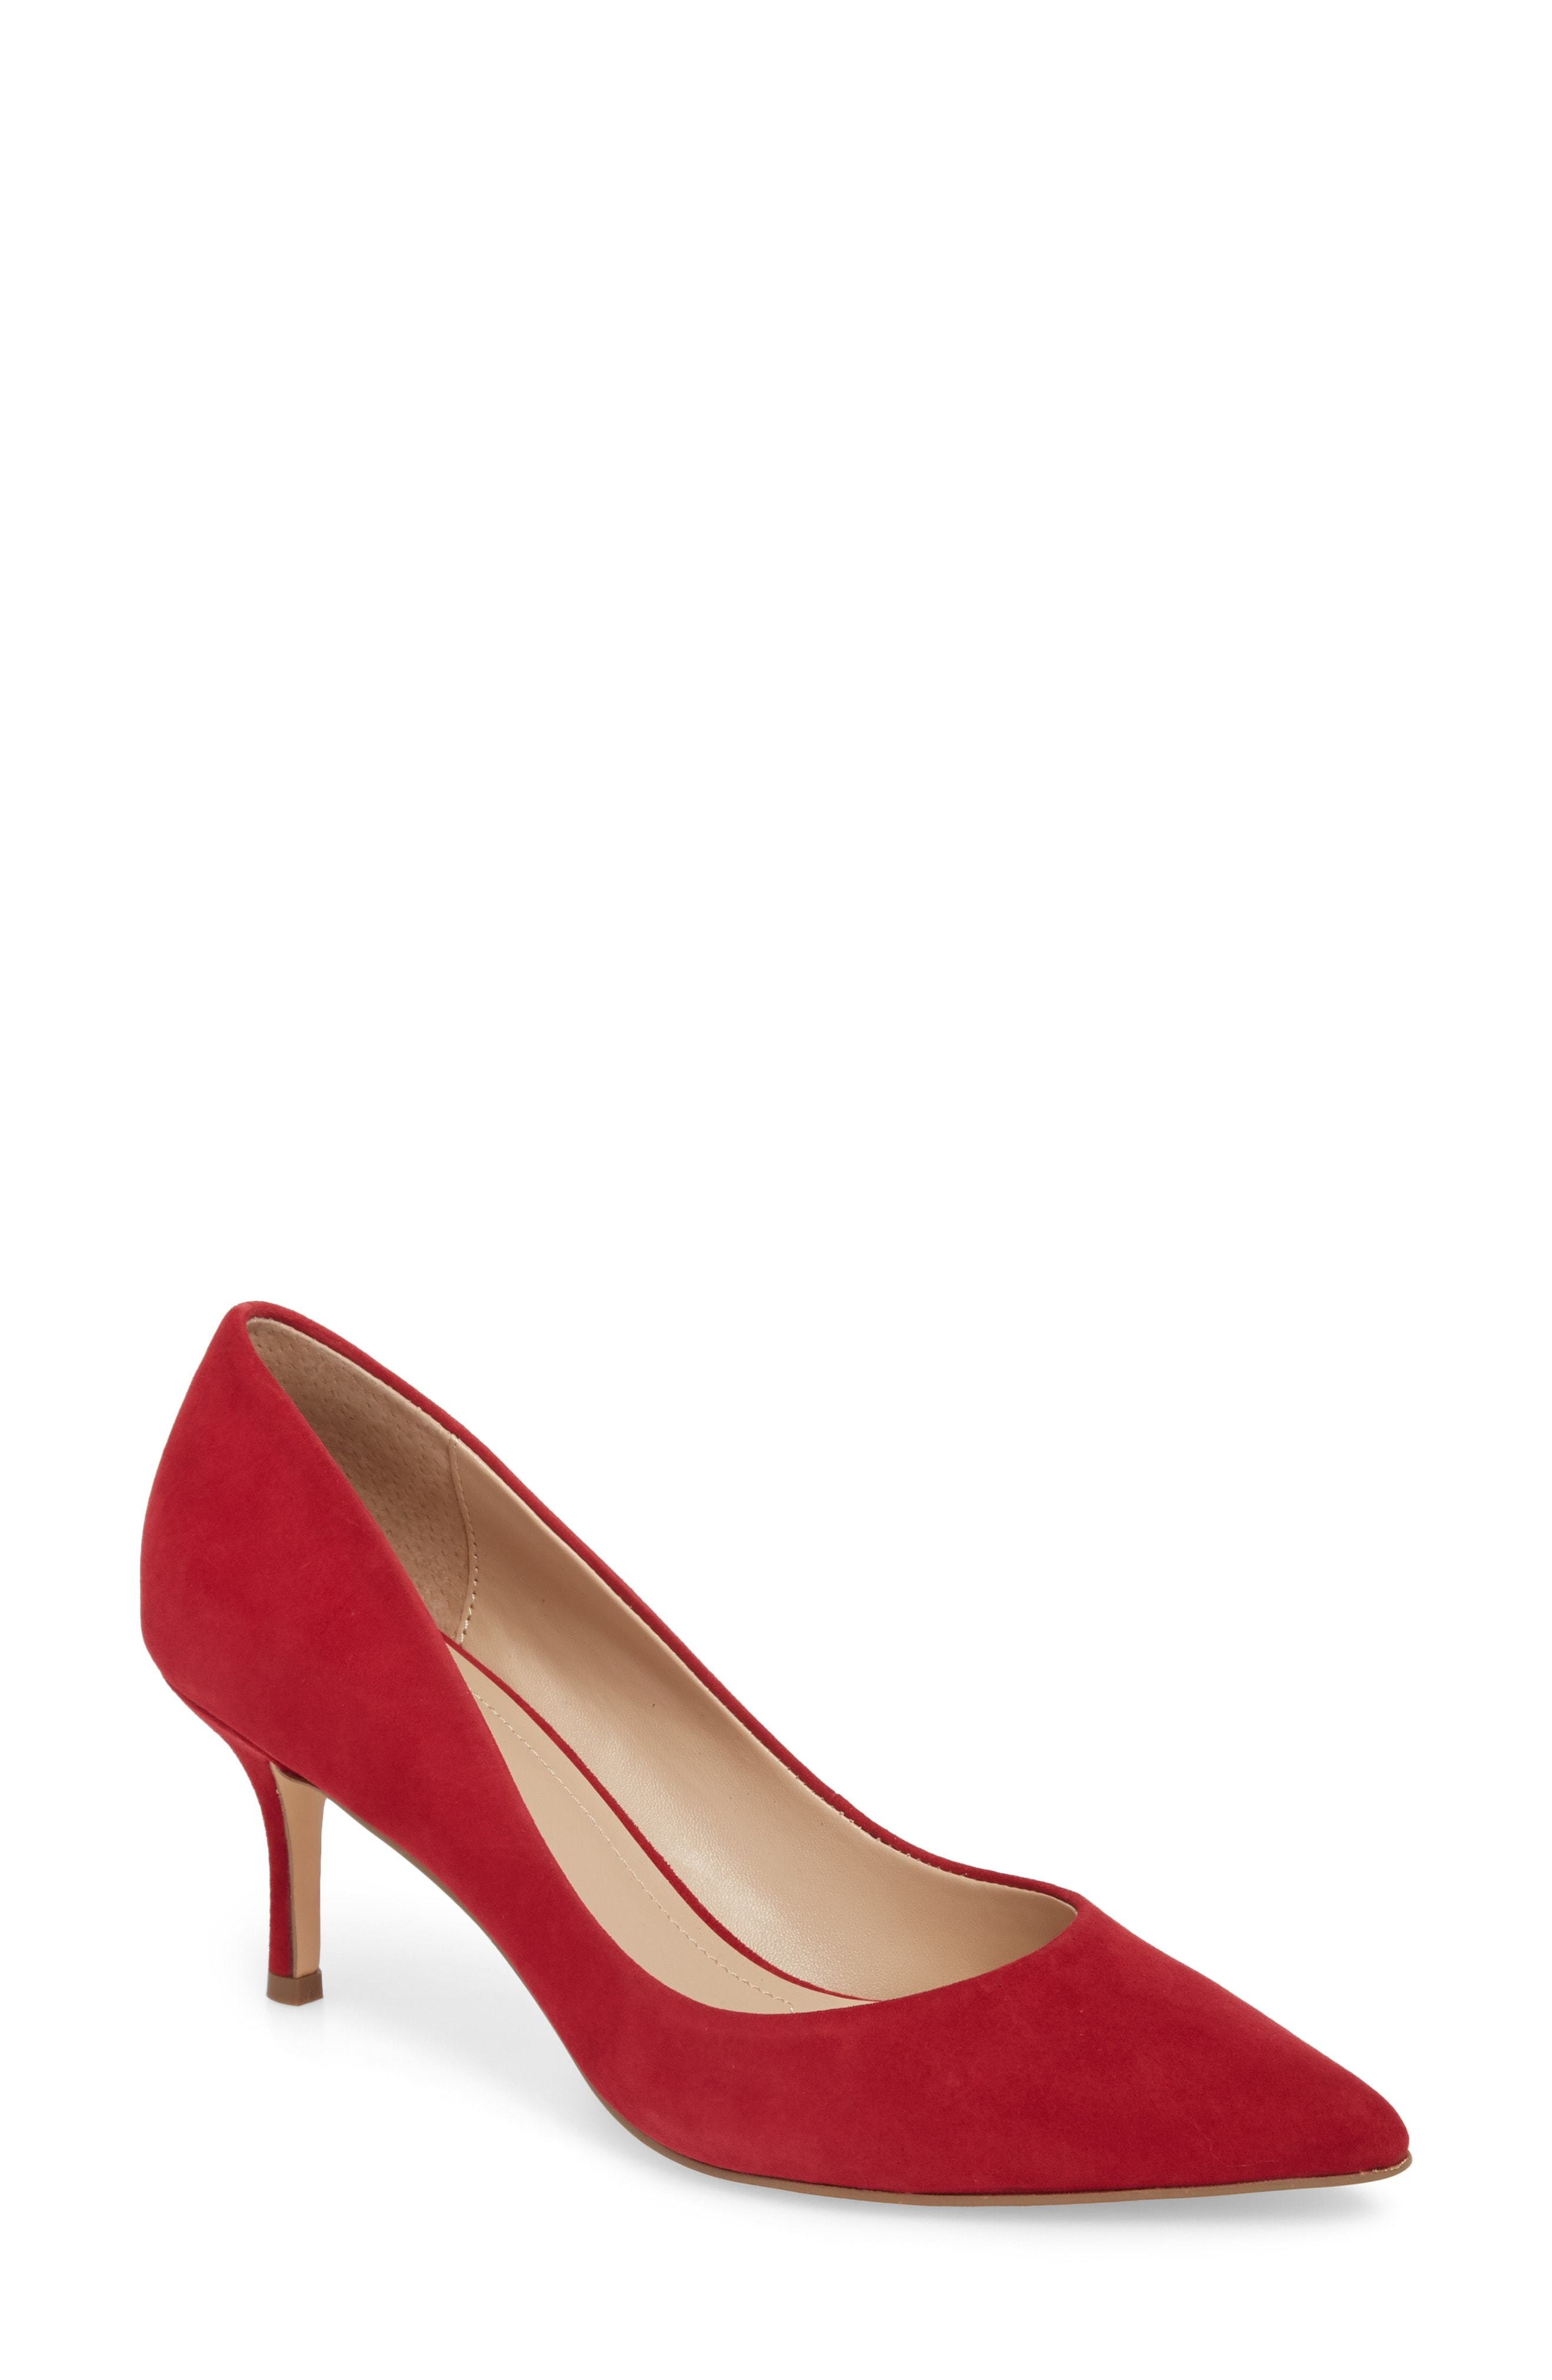 d4662ff0e6db Charles by Charles David Addie Pump, $89 | Nordstrom | Lookastic.com